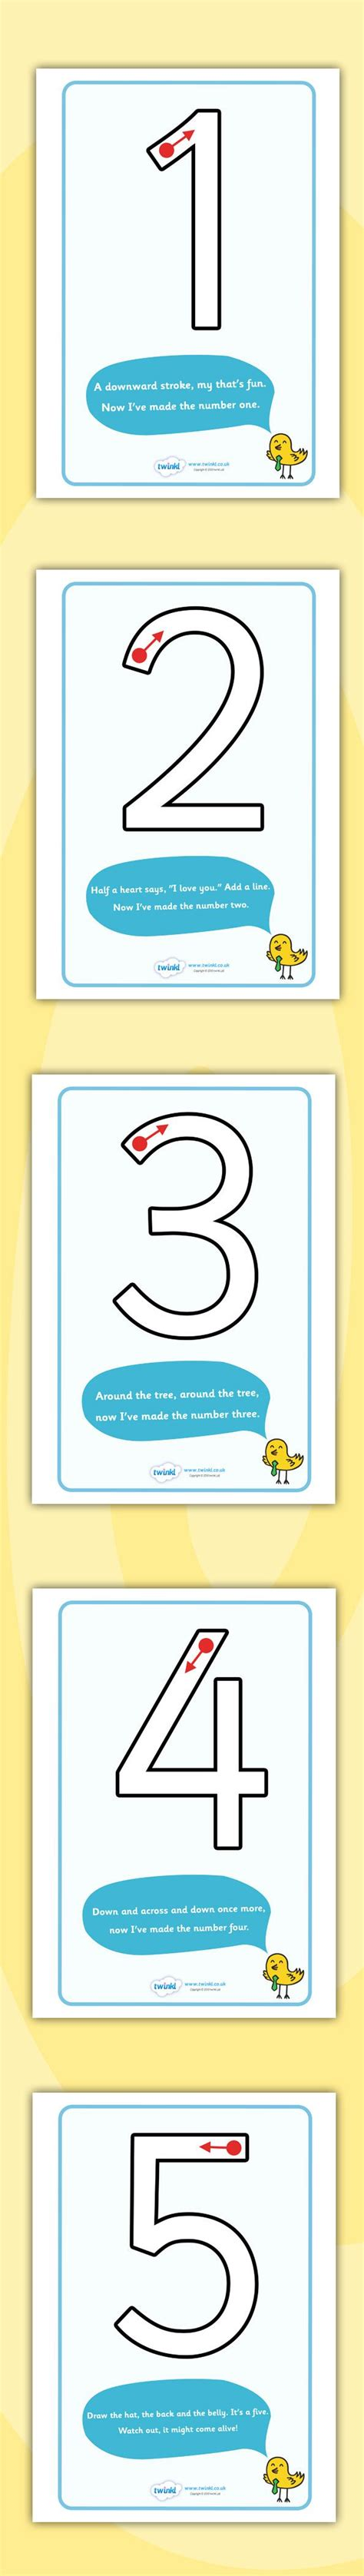 twinkl resources number formation rhyme display posters